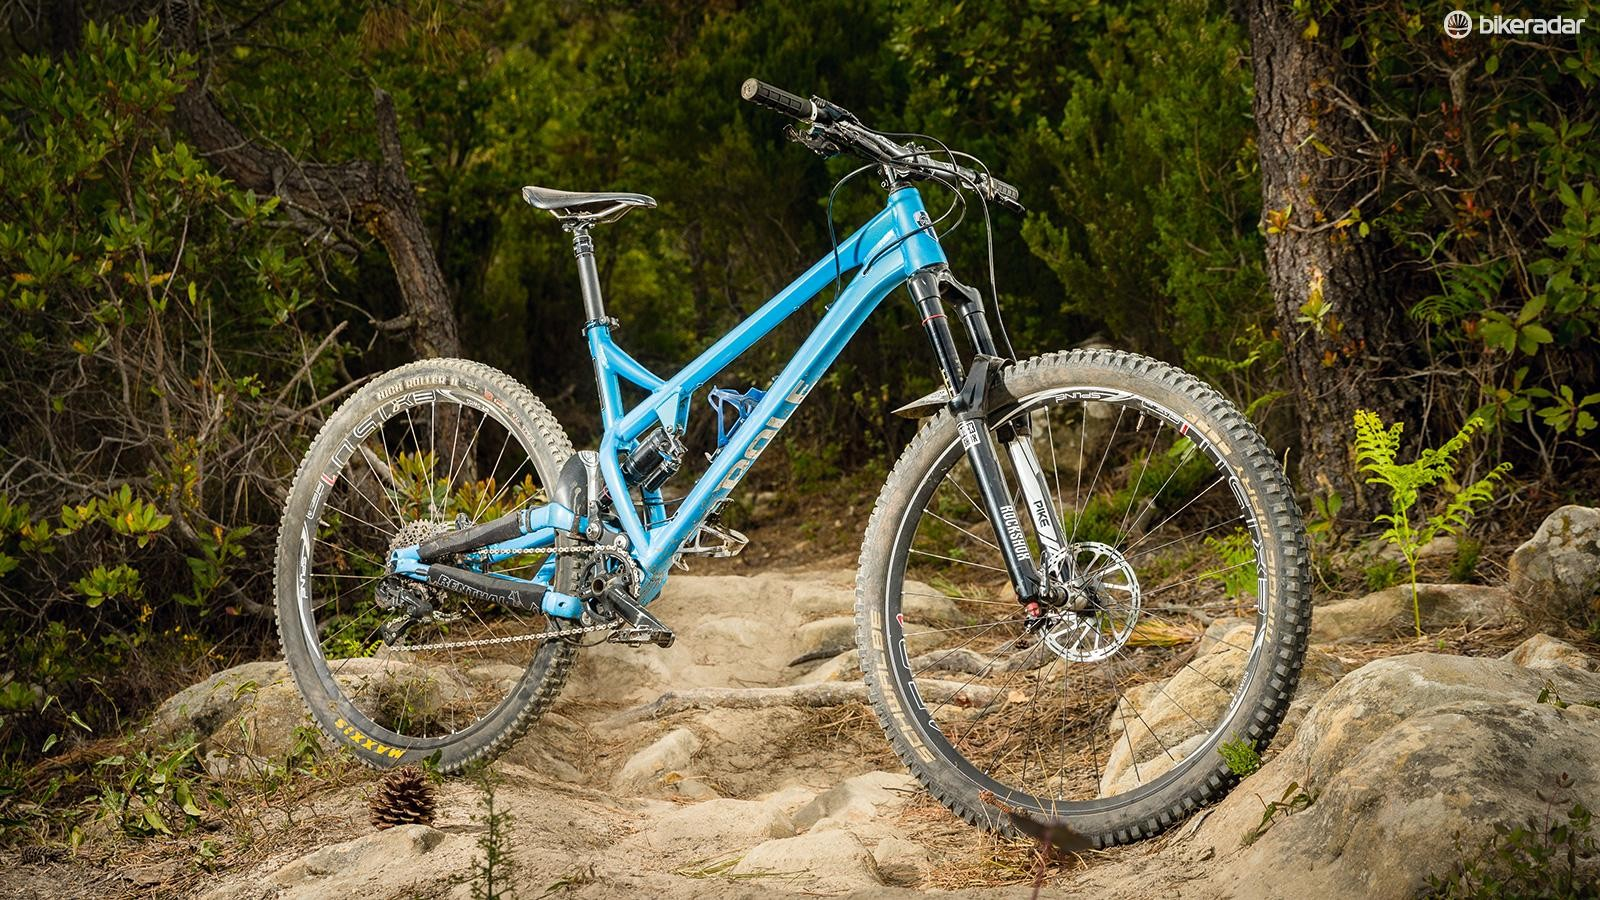 Pole is known for its long and slack mountain bikes, such as the Evolink 140